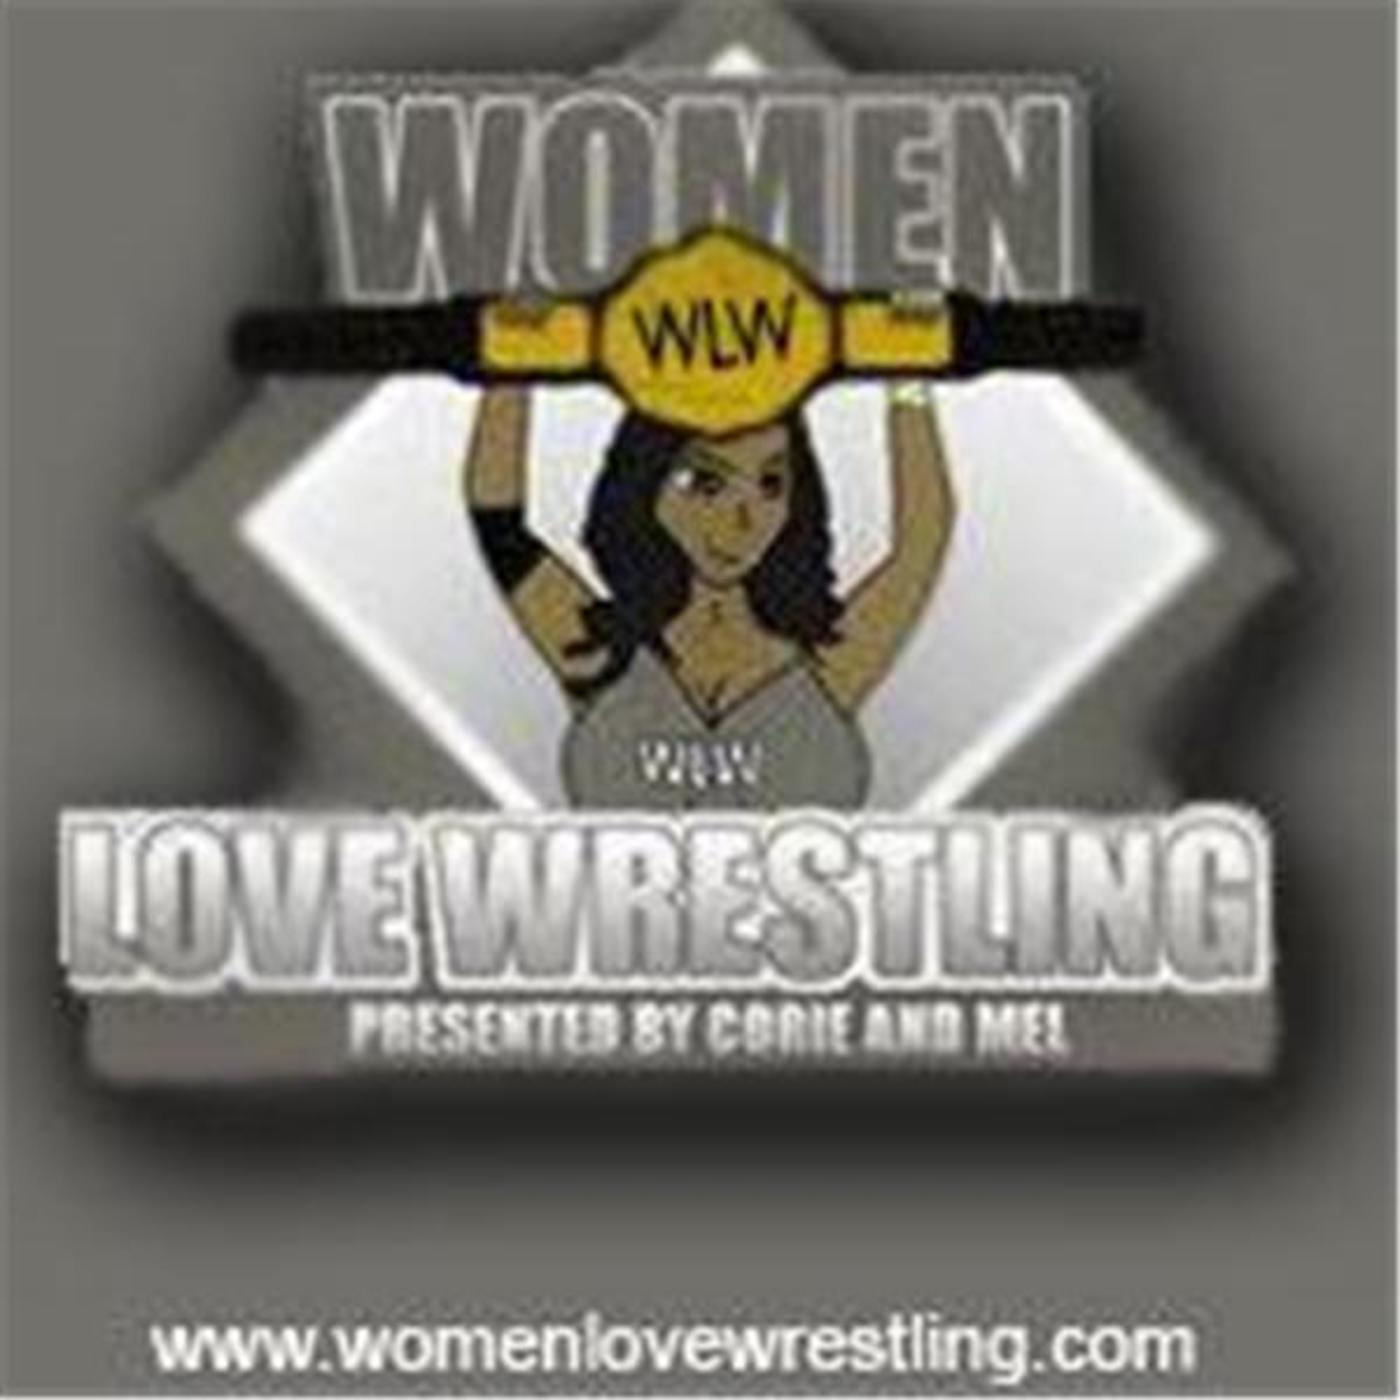 Women Love Wrestling